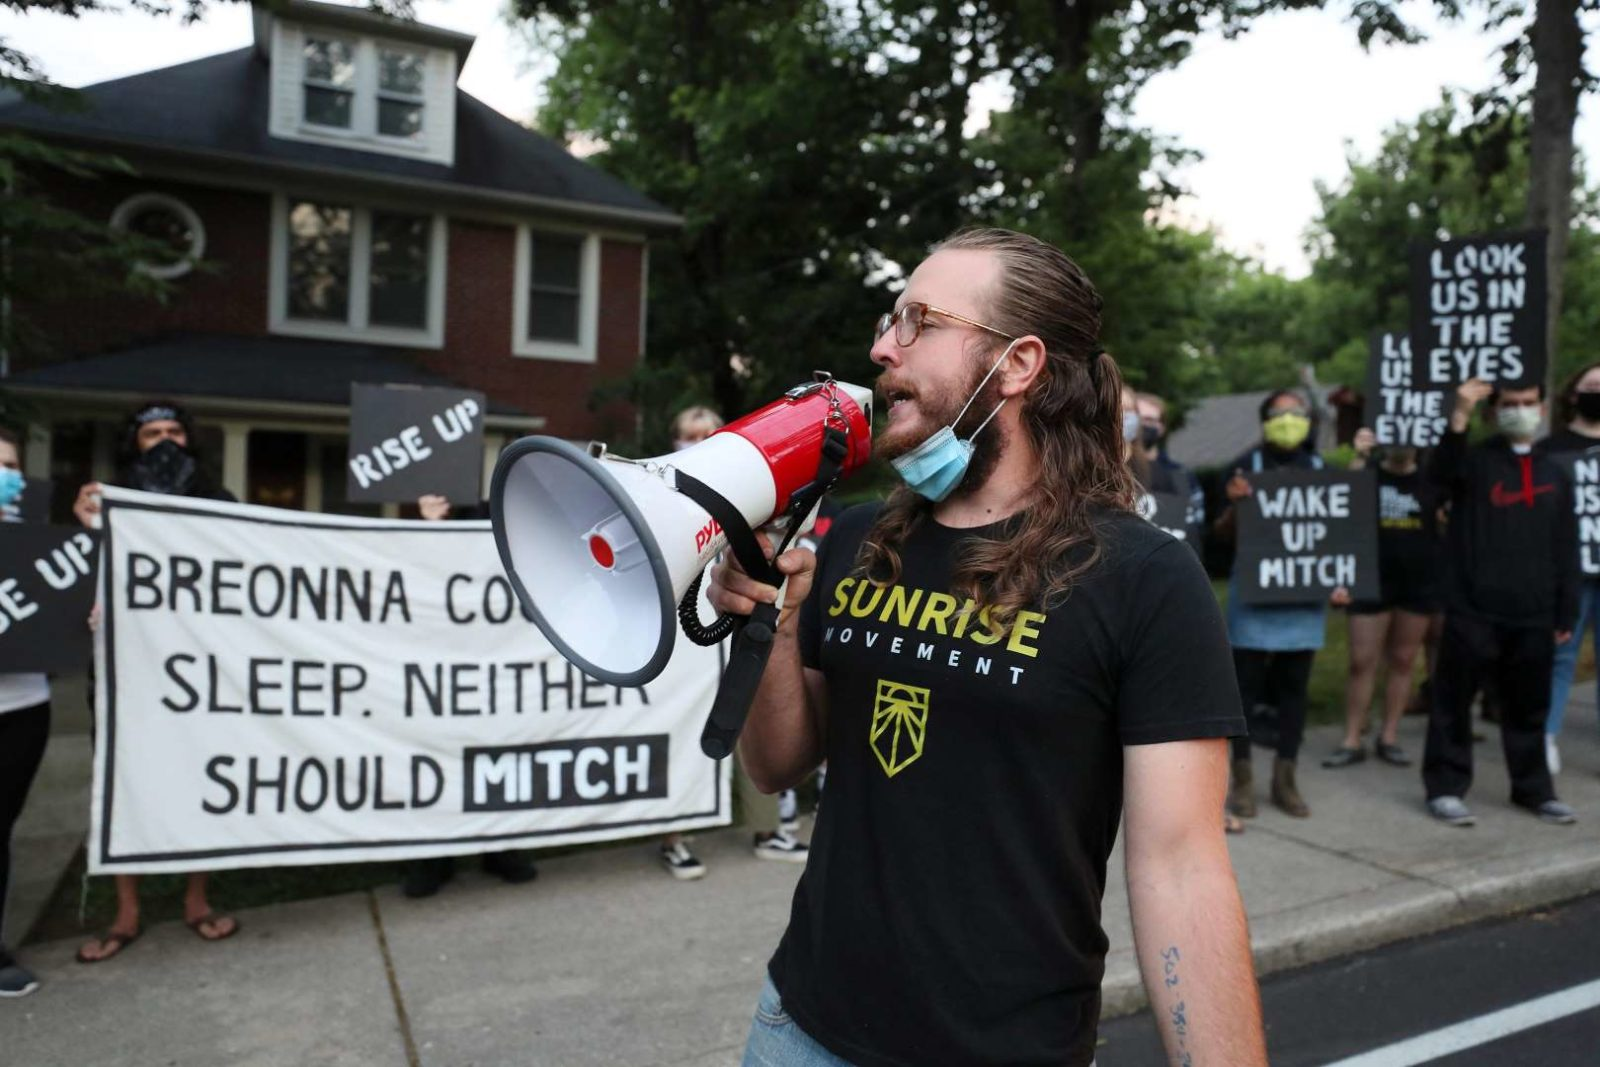 "A Sunrise activist speaks into a megaphone while fellow protesters stand in front of Mitch McConnell's KY house holding a large sign saying ""Breonna Couldn't Sleep. Neither Should Mitch""."